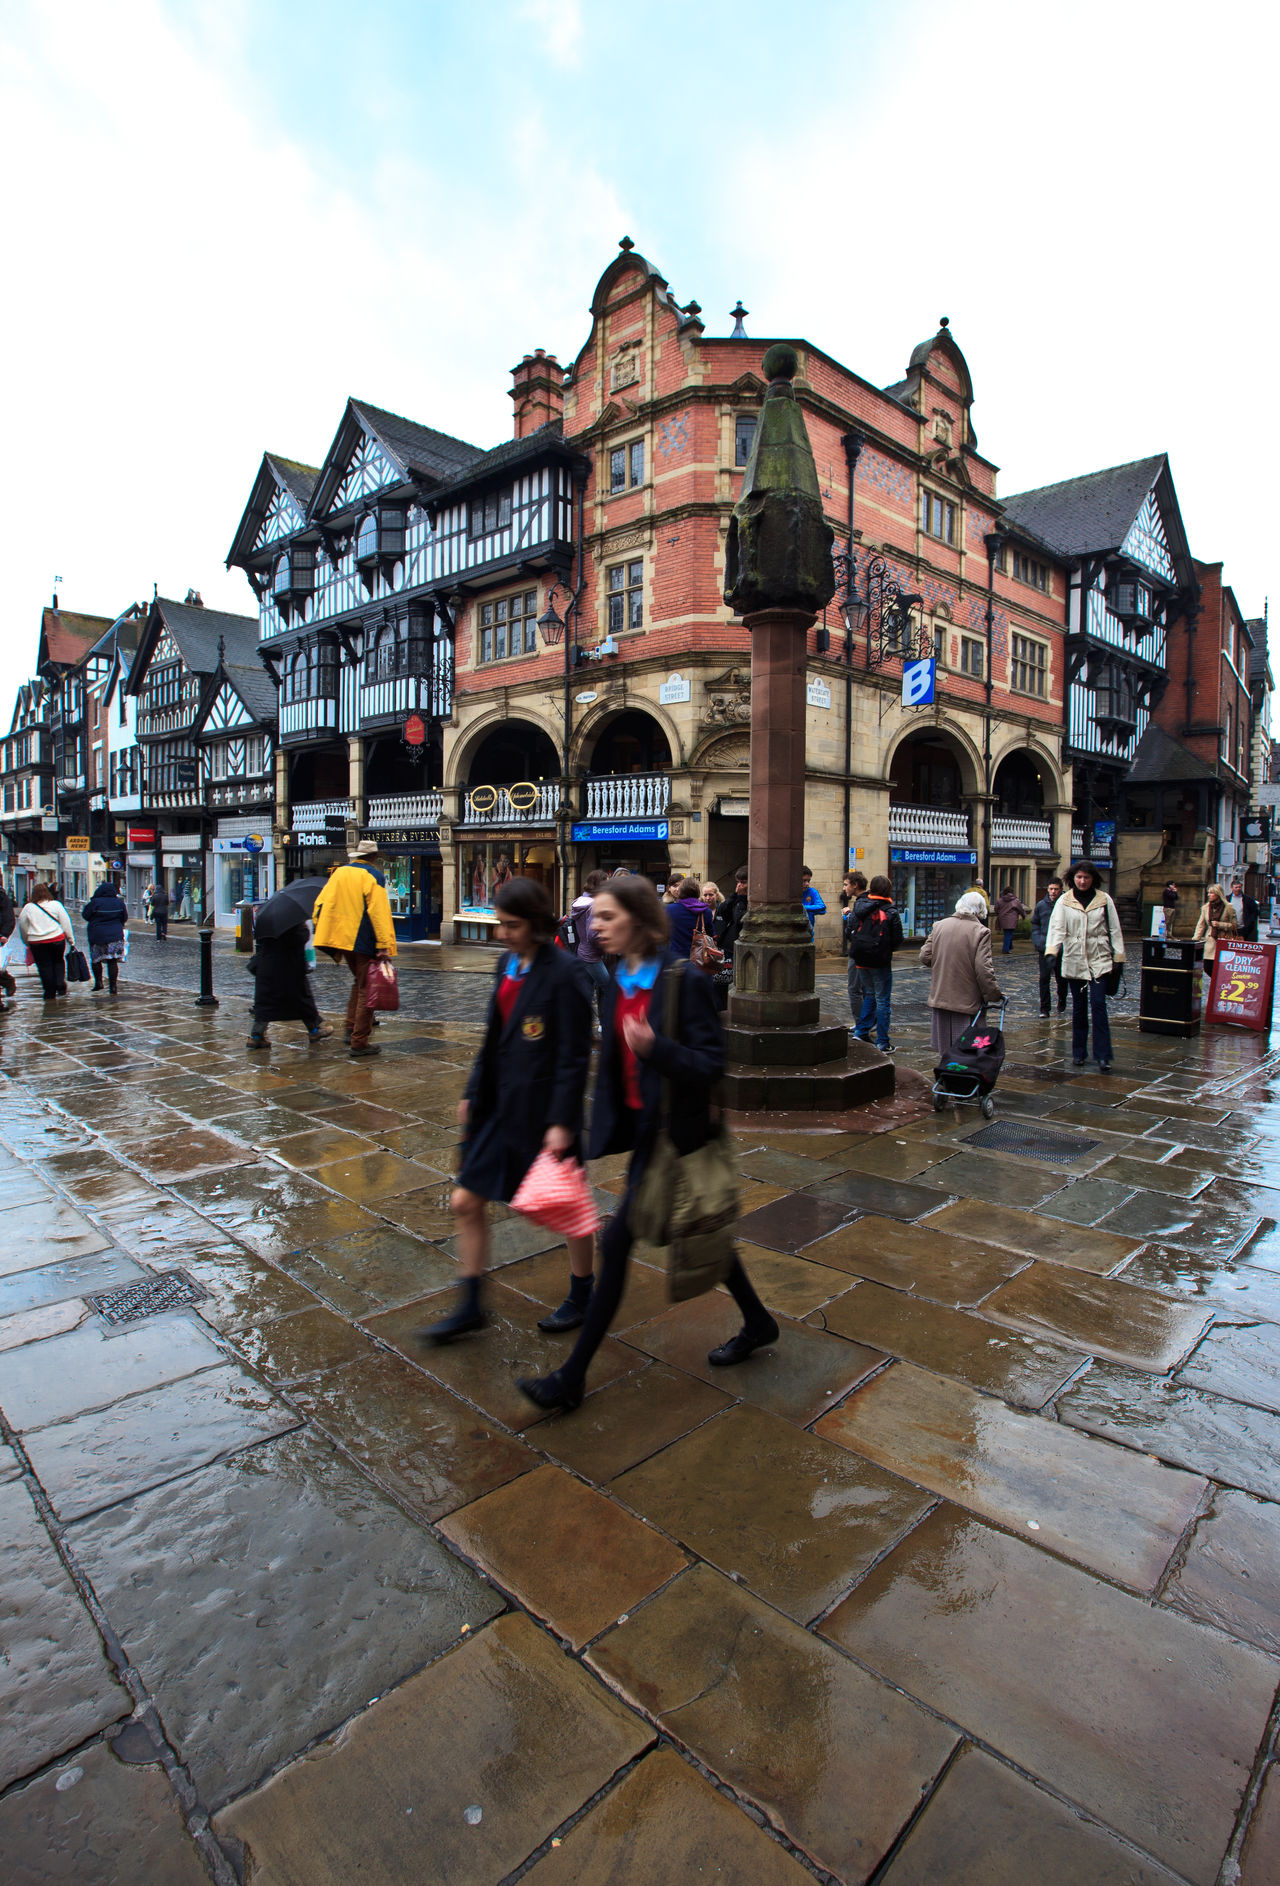 Busy citizens in Chester city. Chester in Cheshire in north west England in the United Kingdom. Adult Adults Only Architecture British Building Exterior Busy Street Cheshire Chester City Cloud - Sky Crowd Day England Eye4photography  Men Only Men Outdoors People Real People Sky Street Travel Destinations Uk Walking Water